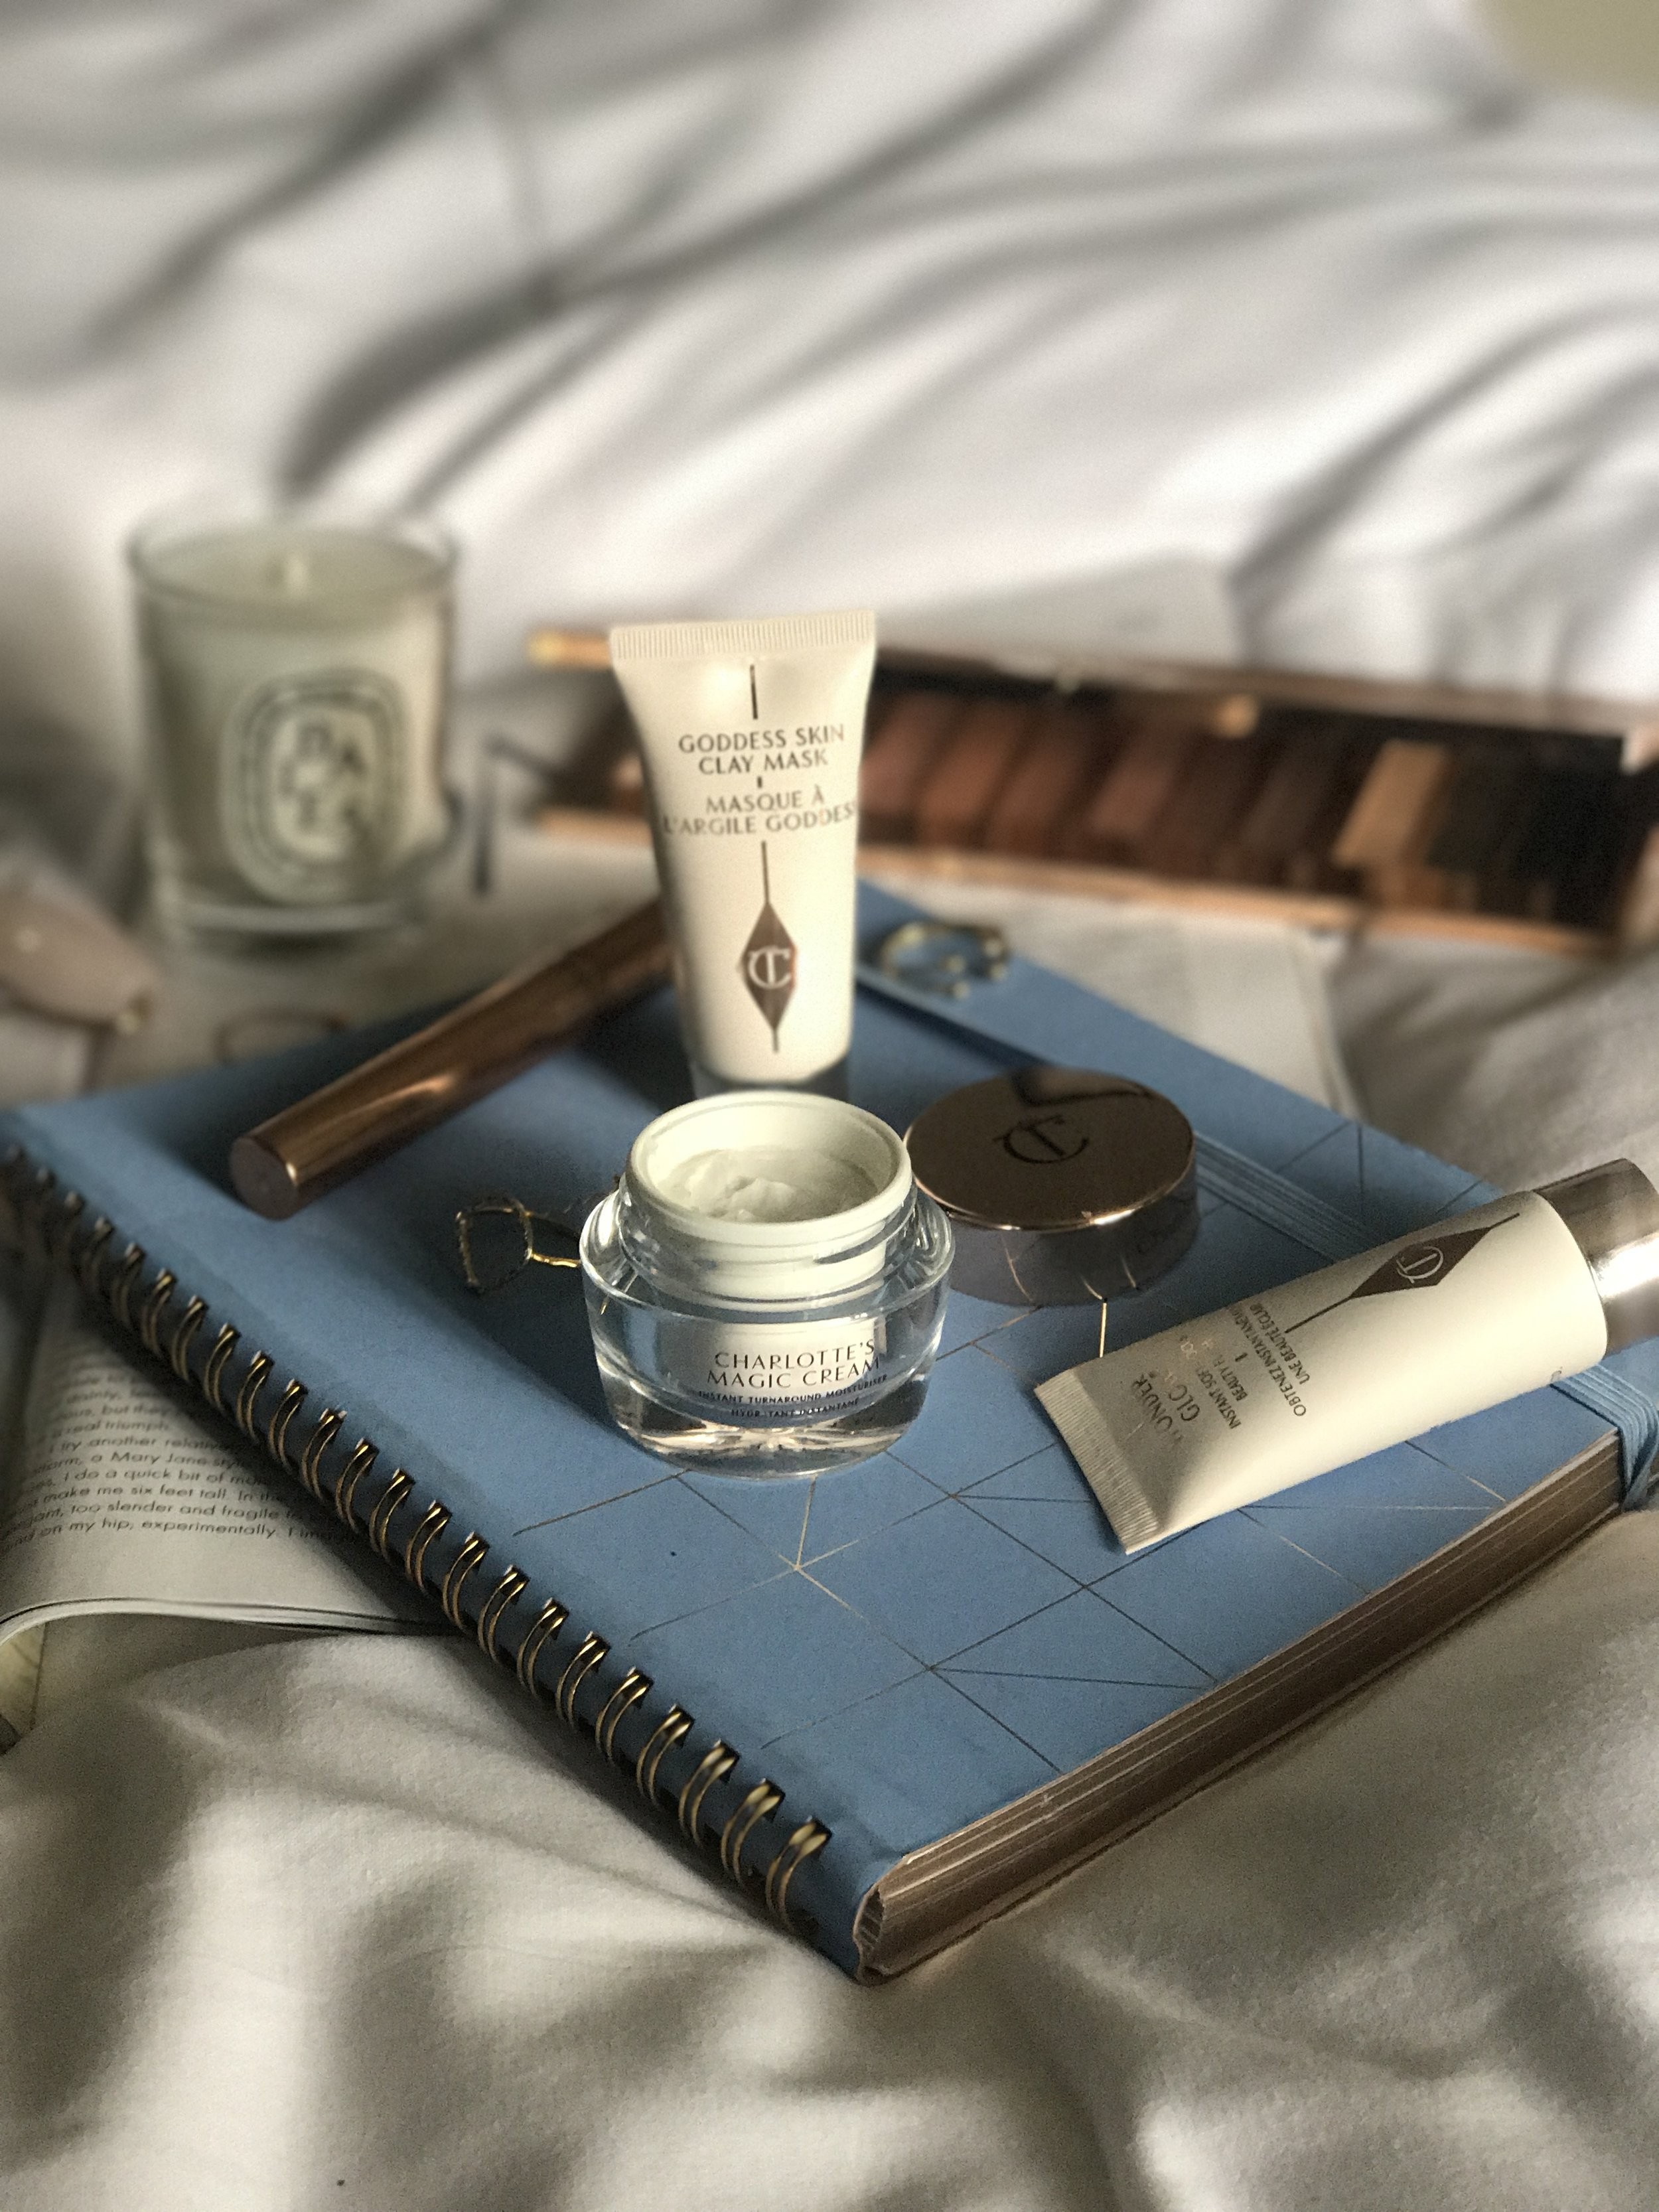 Charlotte Tilbury Beauty Review and Flat lay by The Creative Larder